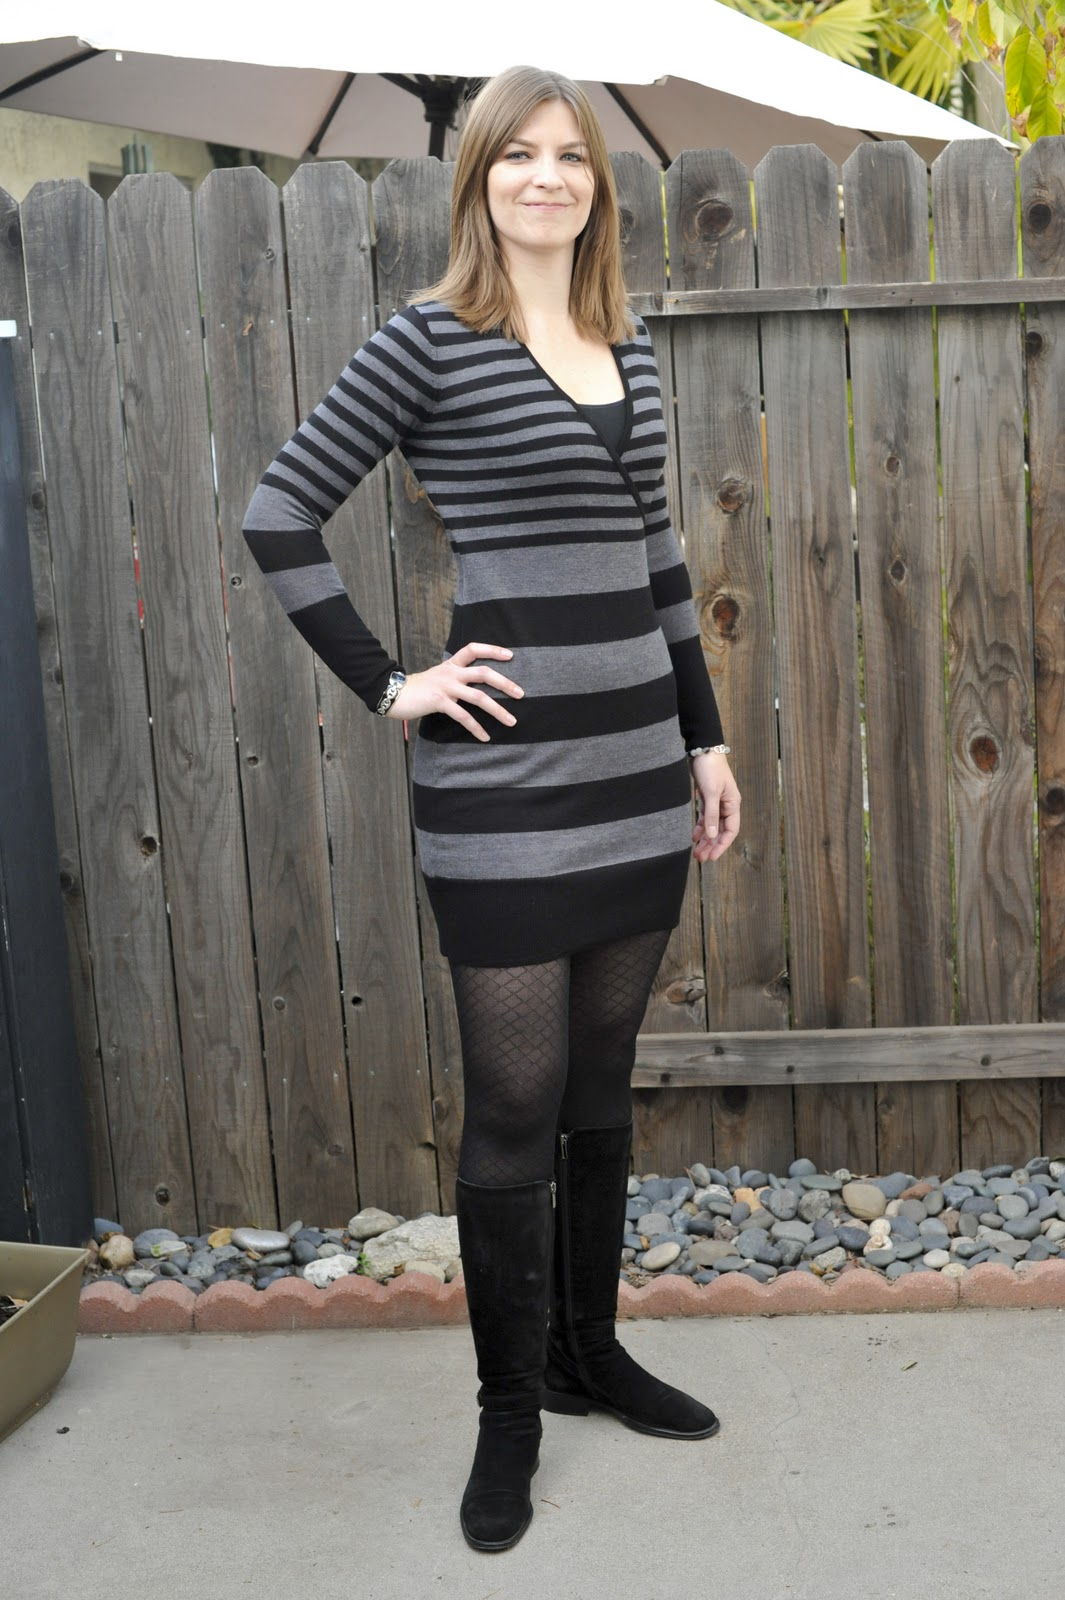 5 Ways to Wear a Sweater Dress. Instead of passing it up, all you need to do is add a pair of black leggings to your outfit. Leggings turn your sweater dress into a long top creating a look that is hip and modern. 4. Try a Cold Shoulder Sweater Dress This fall, a cold shoulder dress .